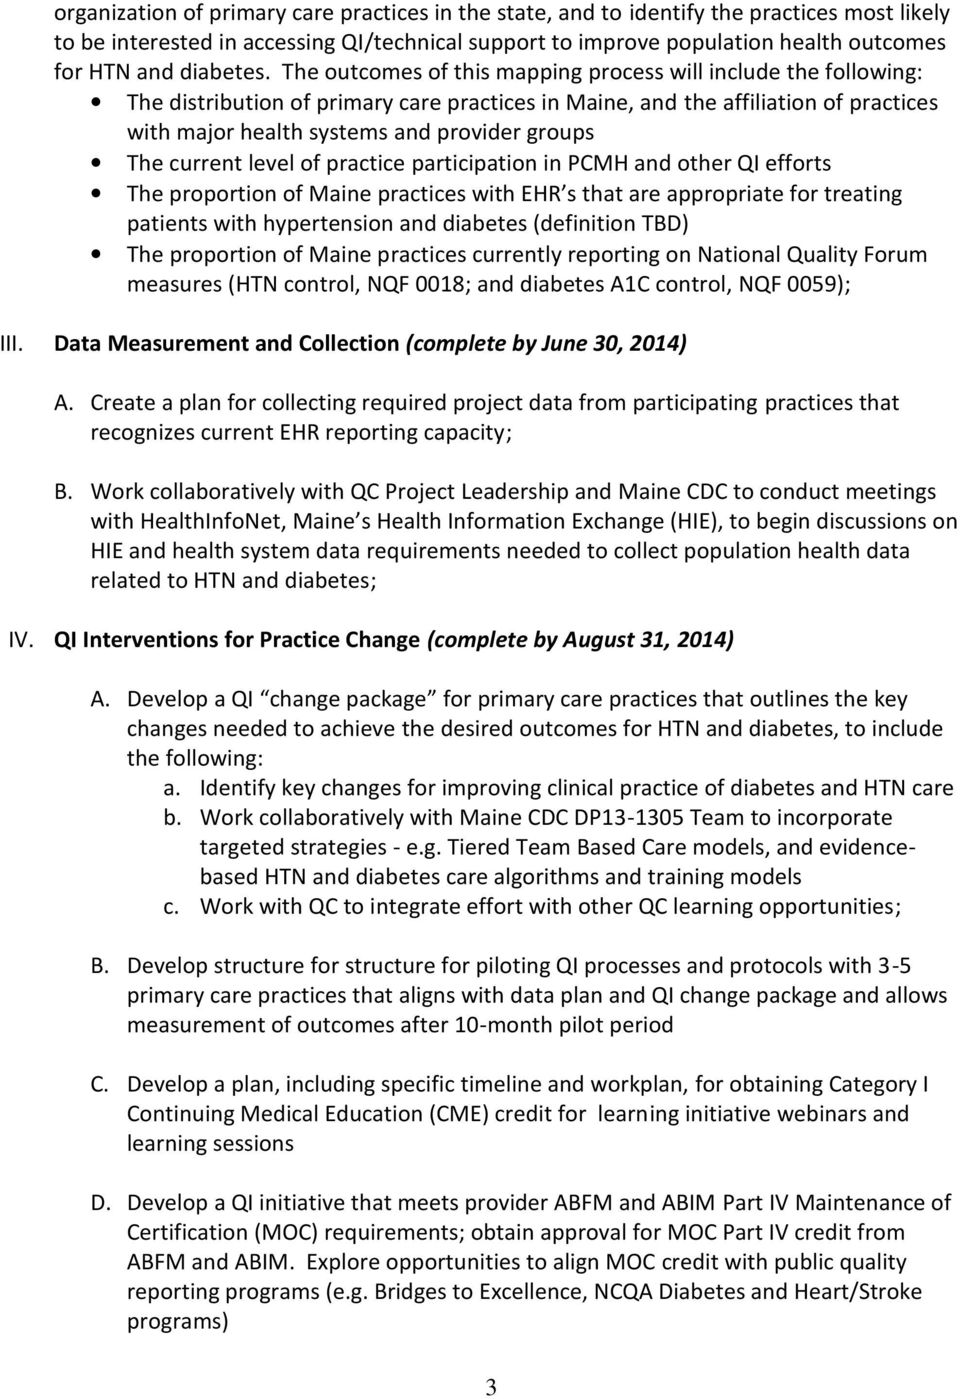 The outcomes of this mapping process will include the following: The distribution of primary care practices in Maine, and the affiliation of practices with major health systems and provider groups